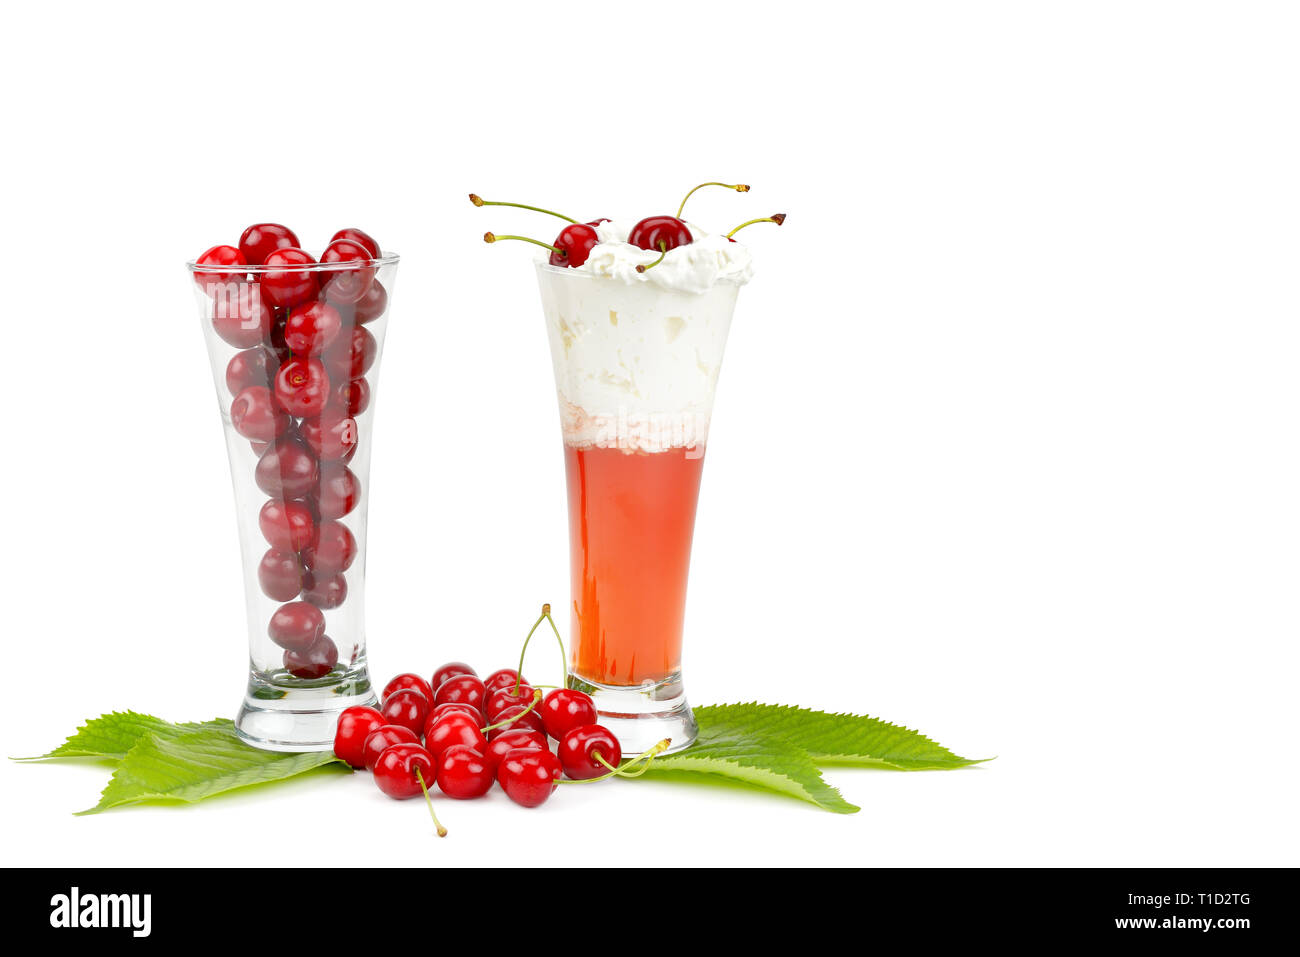 Fresh berries of cherries and smoothies isolated on white background. Free space for text. - Stock Image